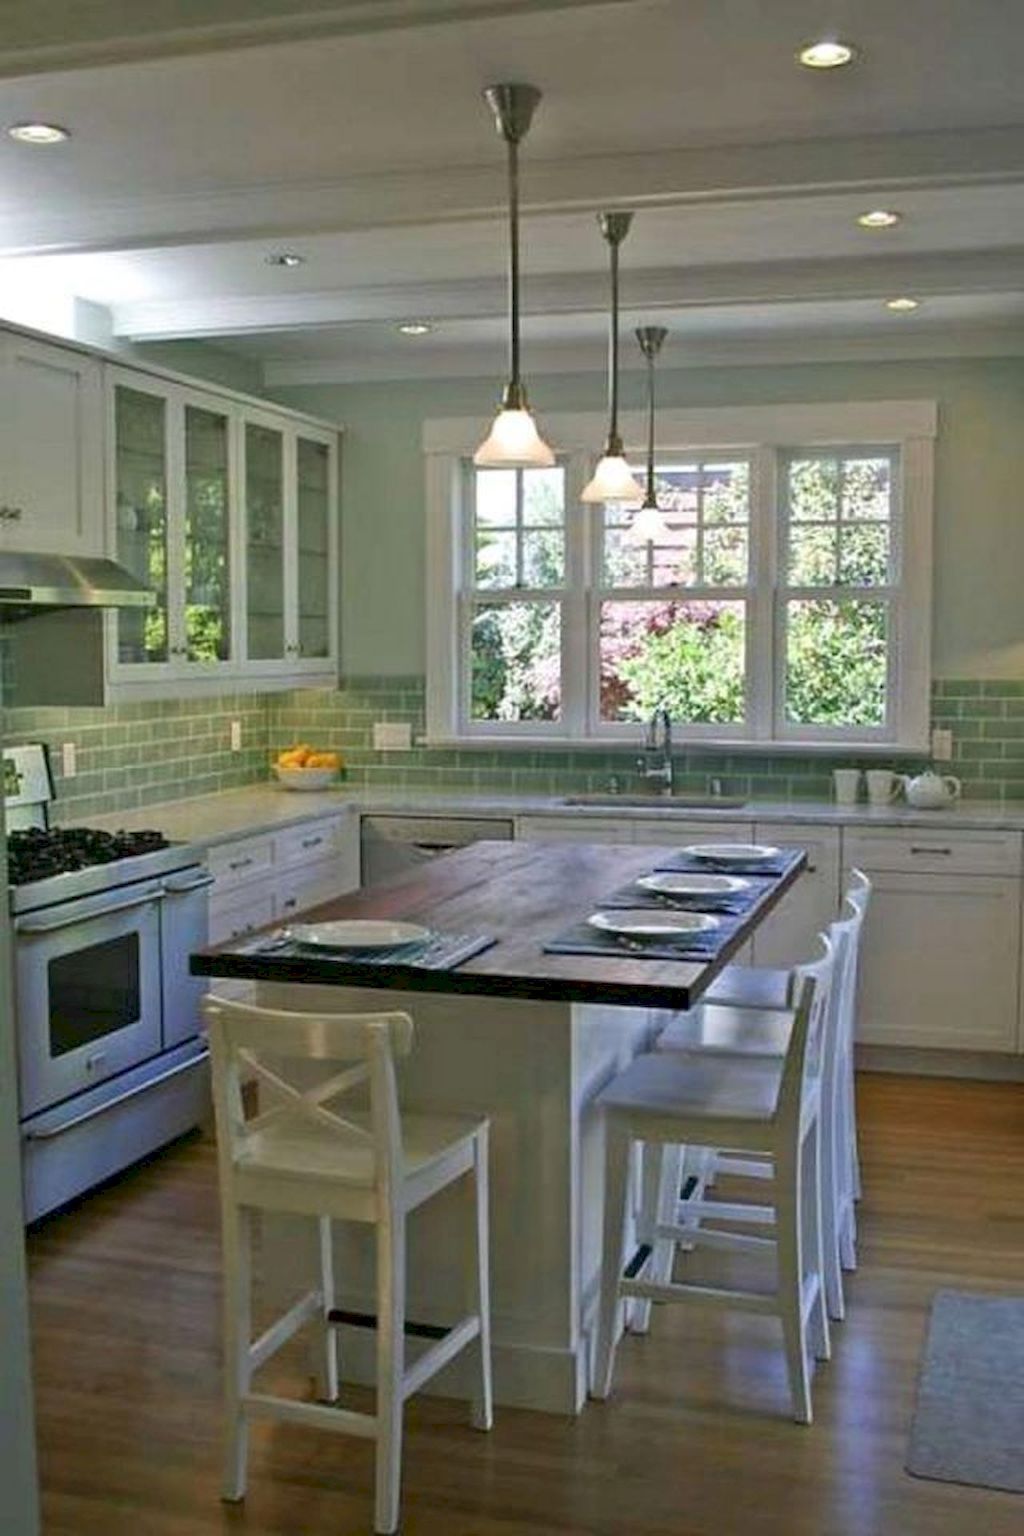 60 beautiful farmhouse kitchen backsplash design ideas insidexterior farmhousek in 2020 on farmhouse kitchen backsplash id=31148